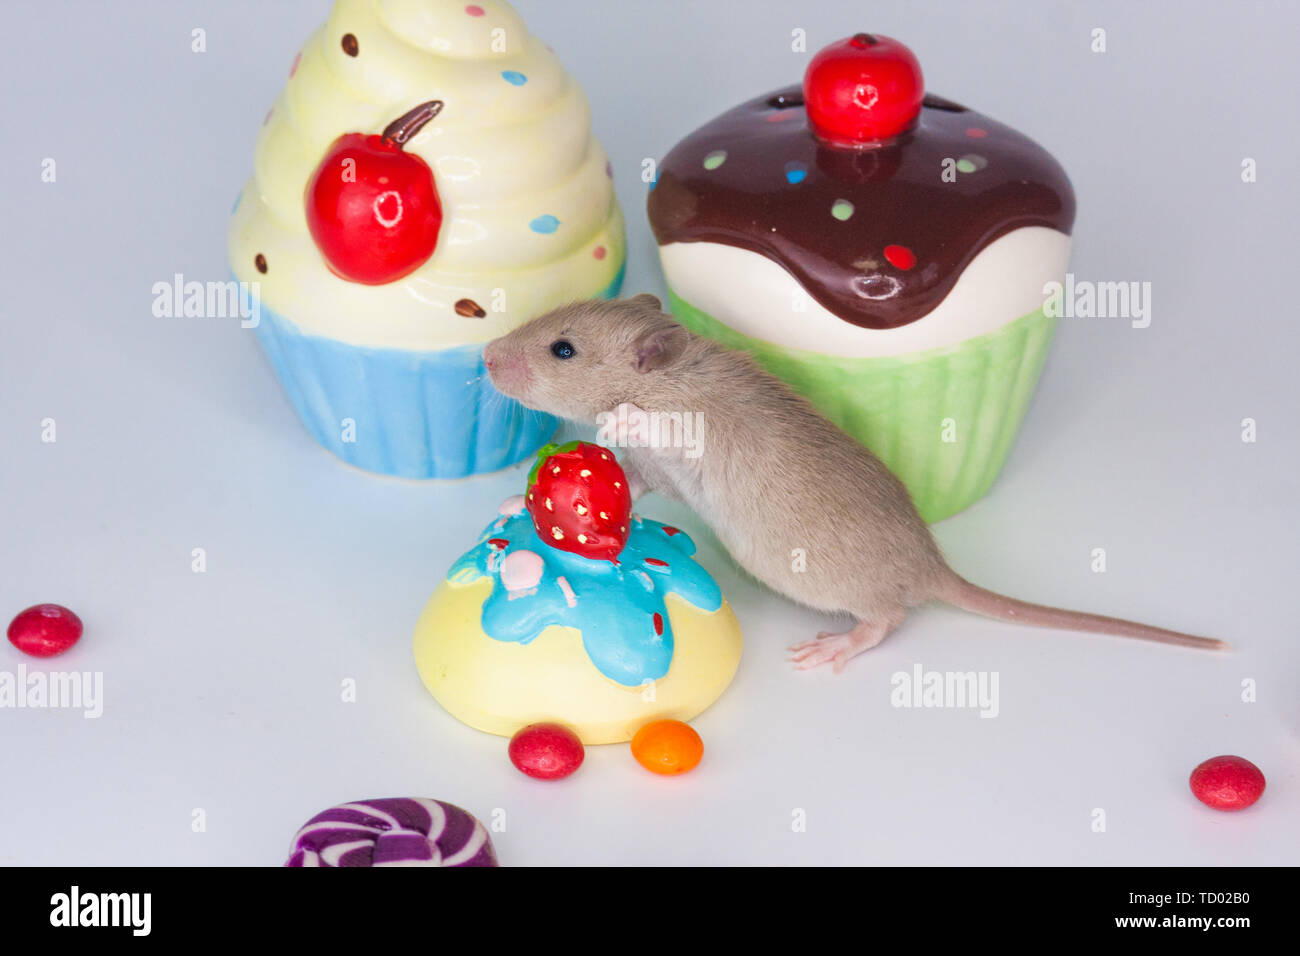 The concept of dessert. Rat on the background of colorful sweets. Mouse with bright candies and cupcakes. Decorative rodent closeup. - Stock Image